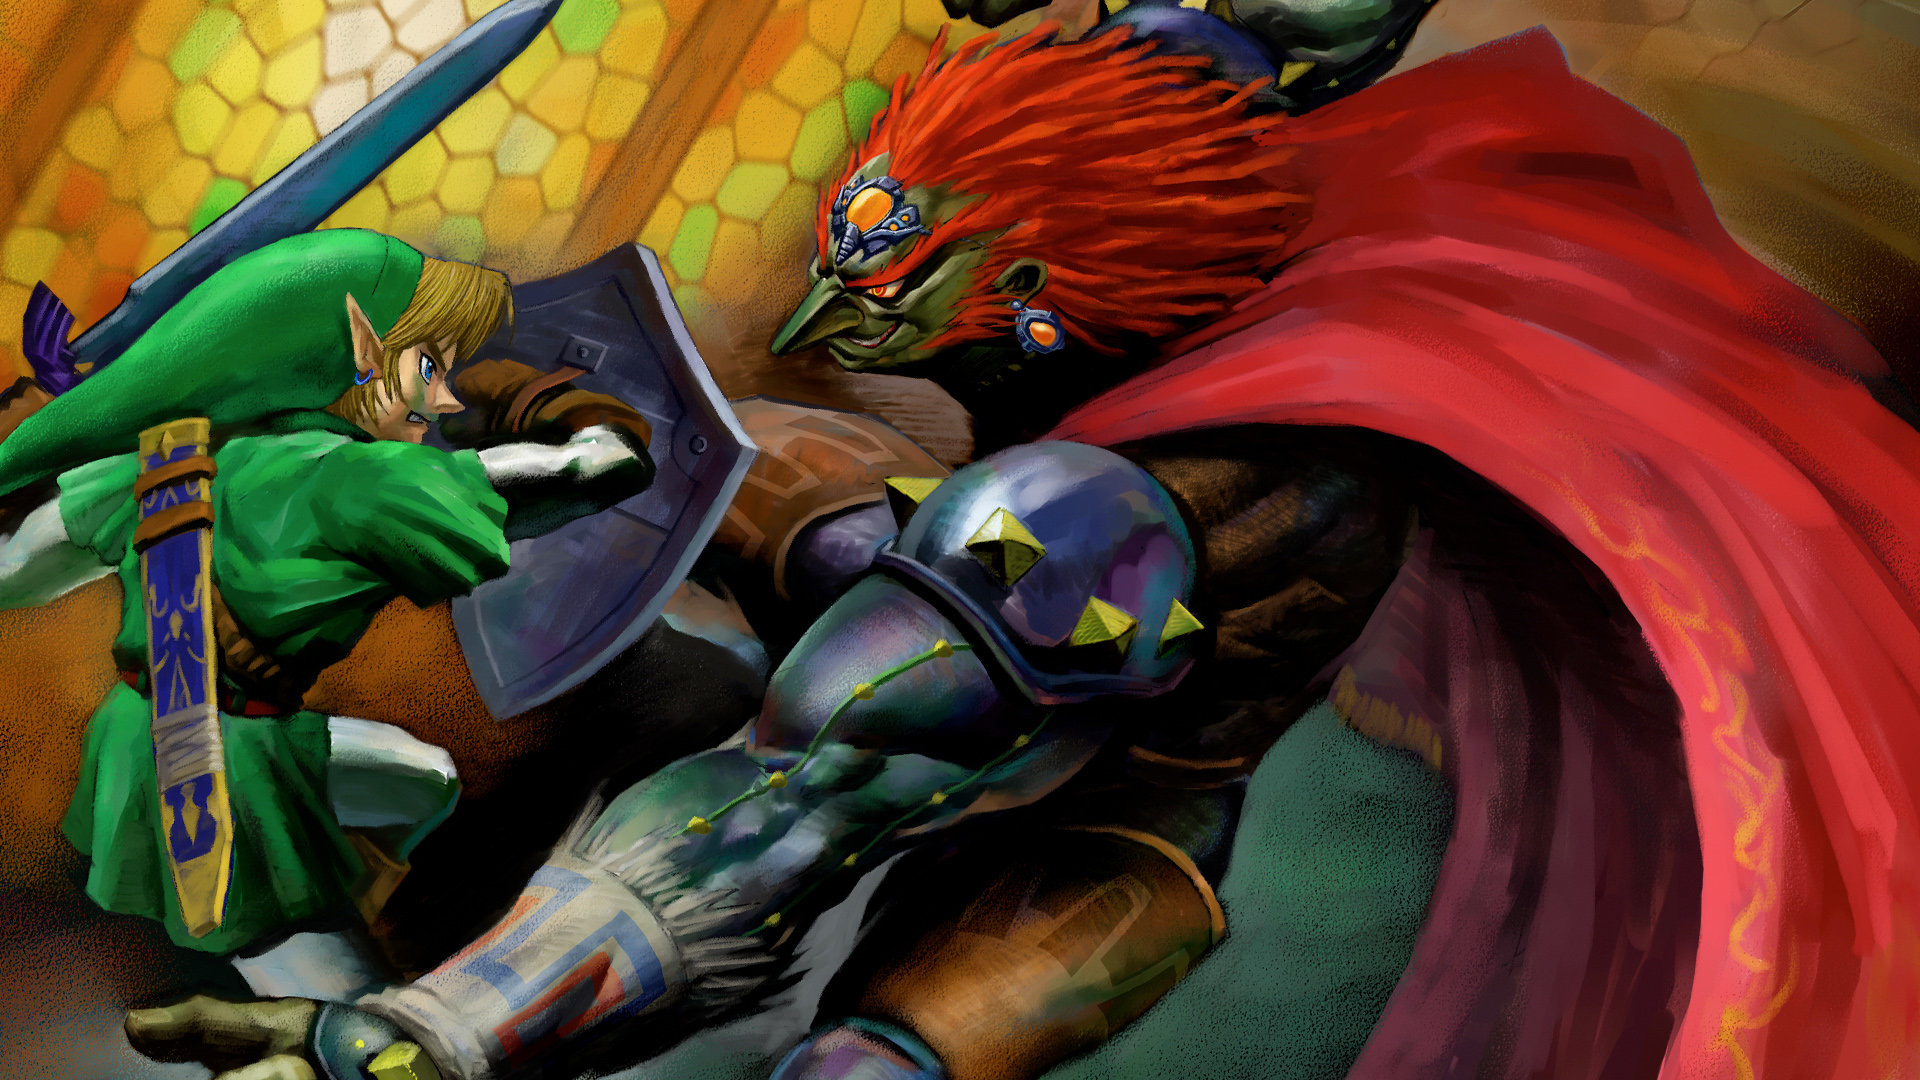 Download Hd 1080p The Legend Of Zelda Ocarina Of Time Desktop